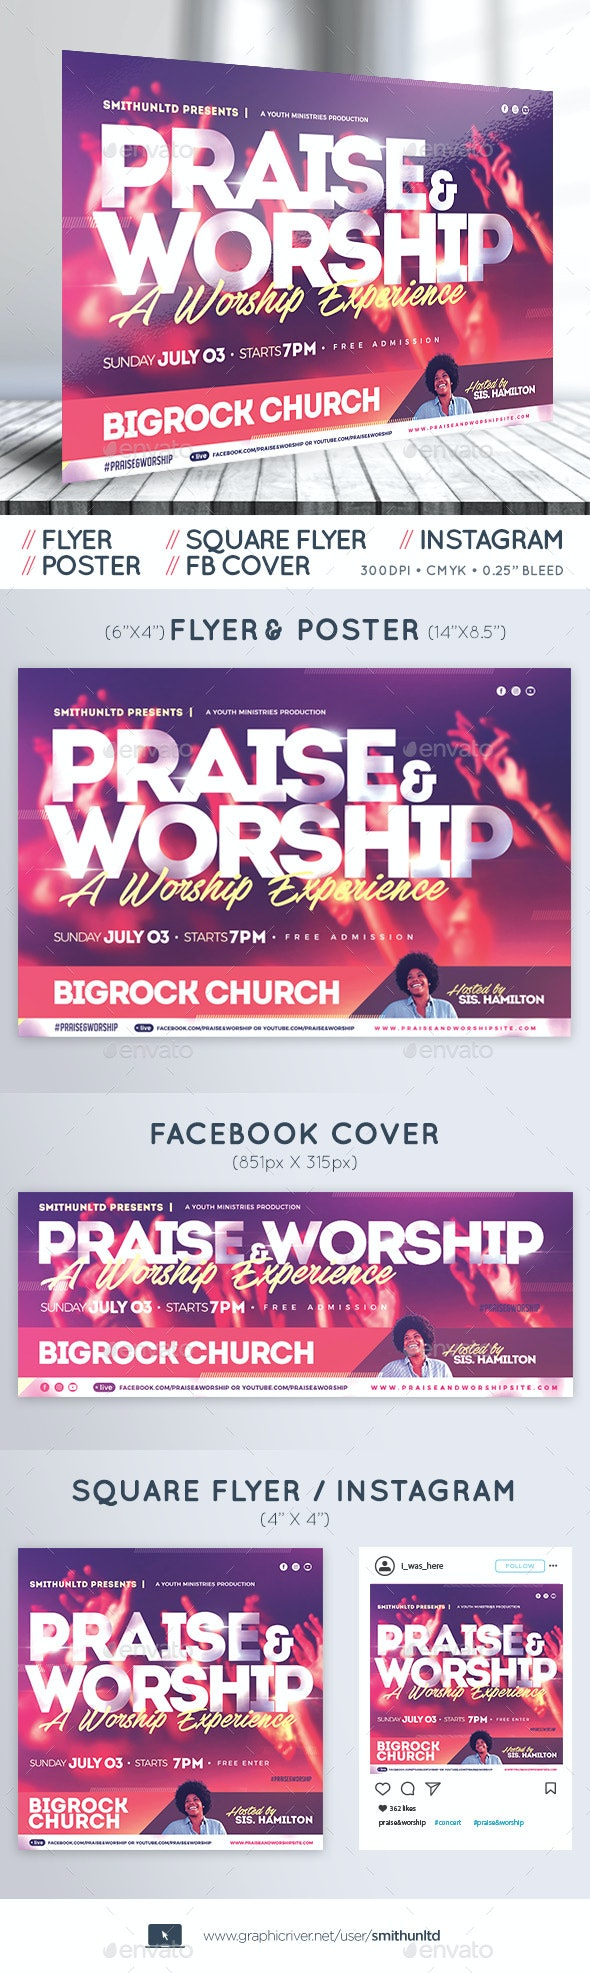 Praise and Worship Flyer - The Experience - Complete Set - Church Flyers